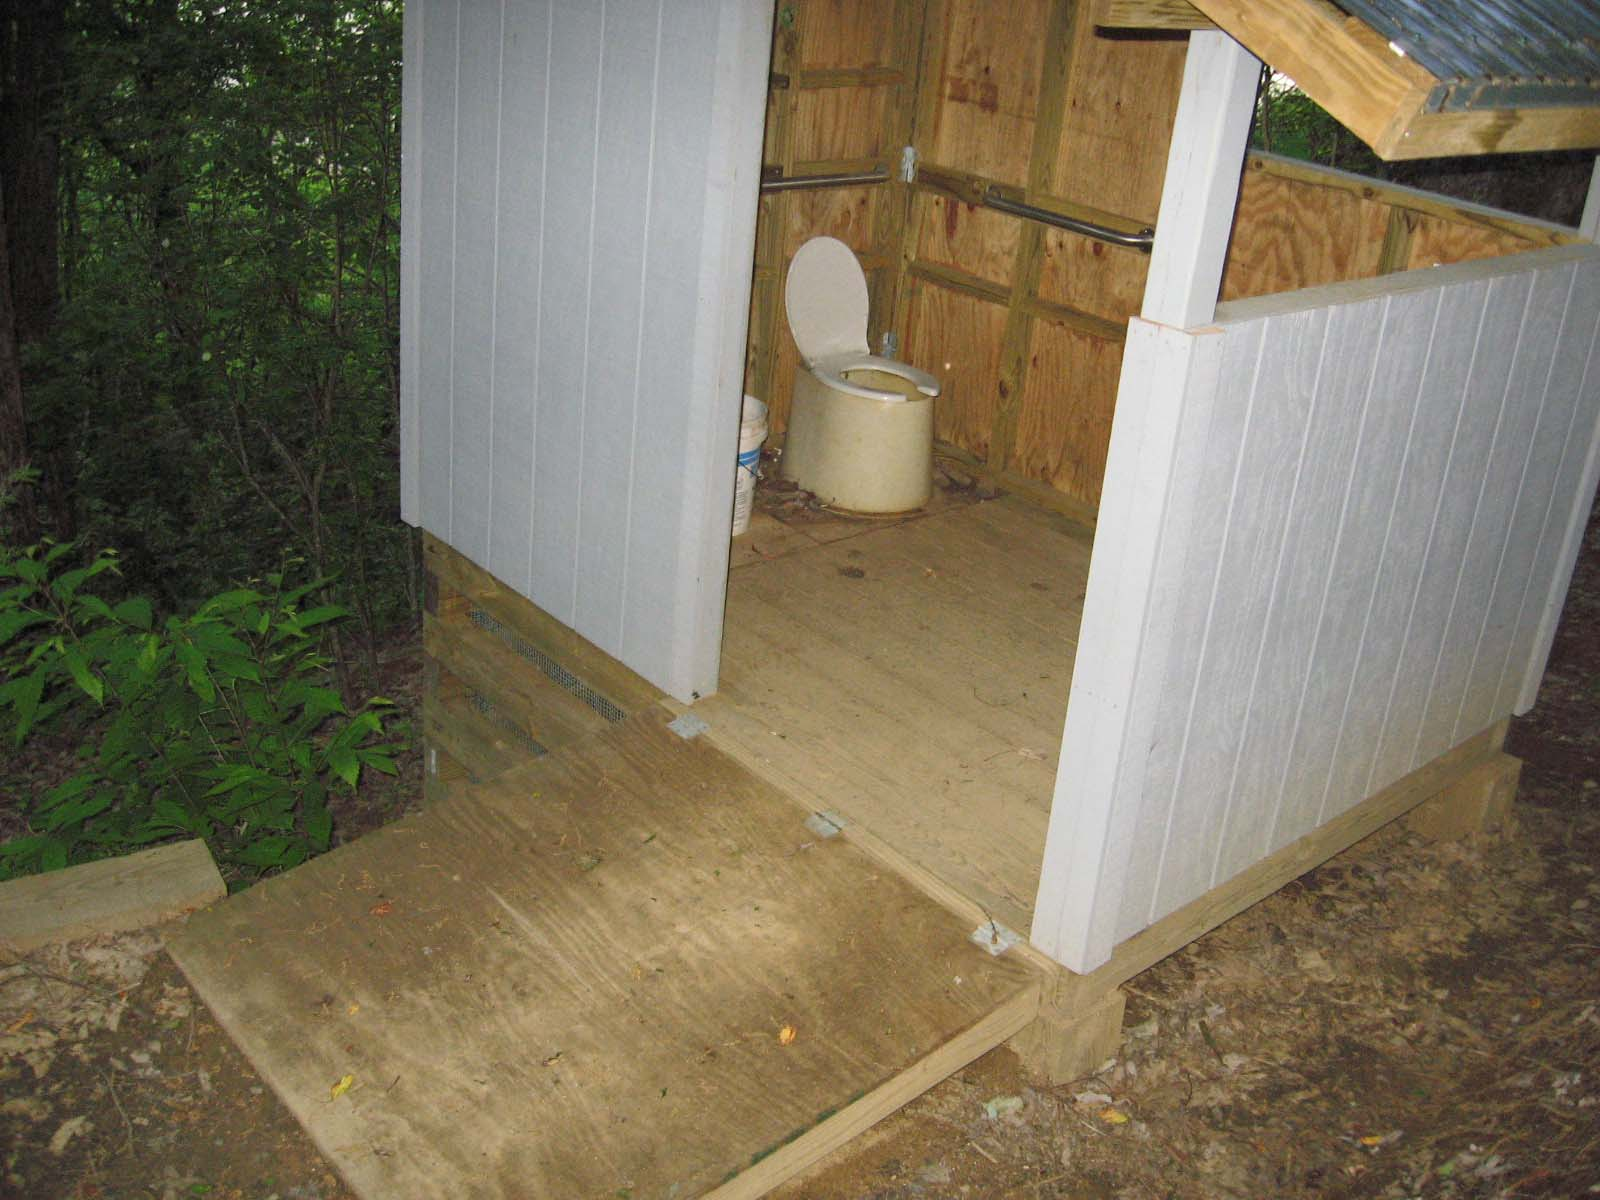 NC state regulations call for handicap accessible privies on top of a completely inaccessible mountain.